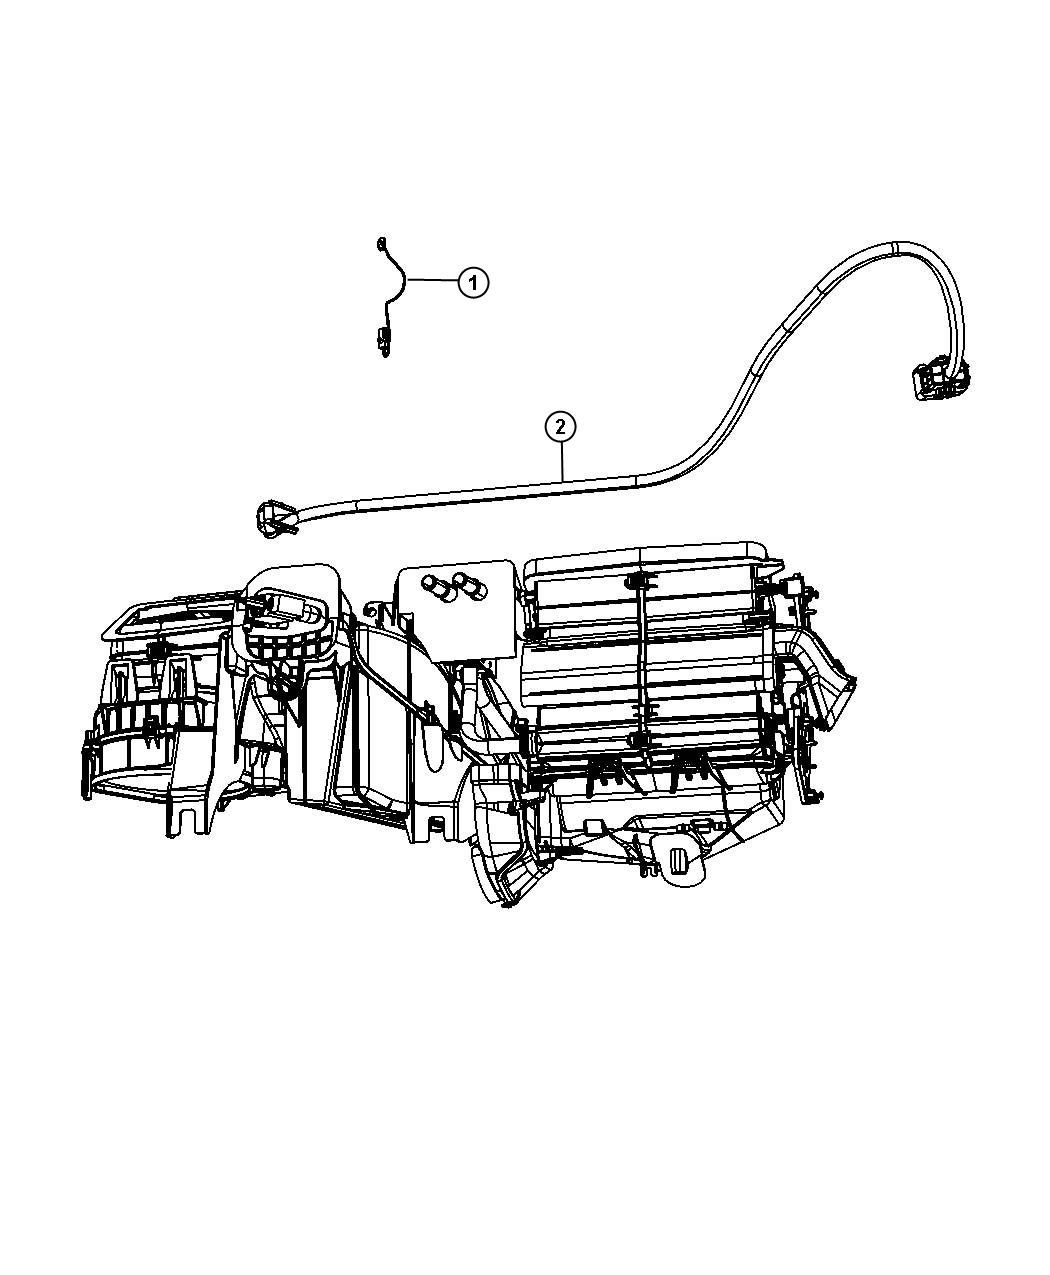 Jeep Liberty Harness Wiring Used For A C And Heater